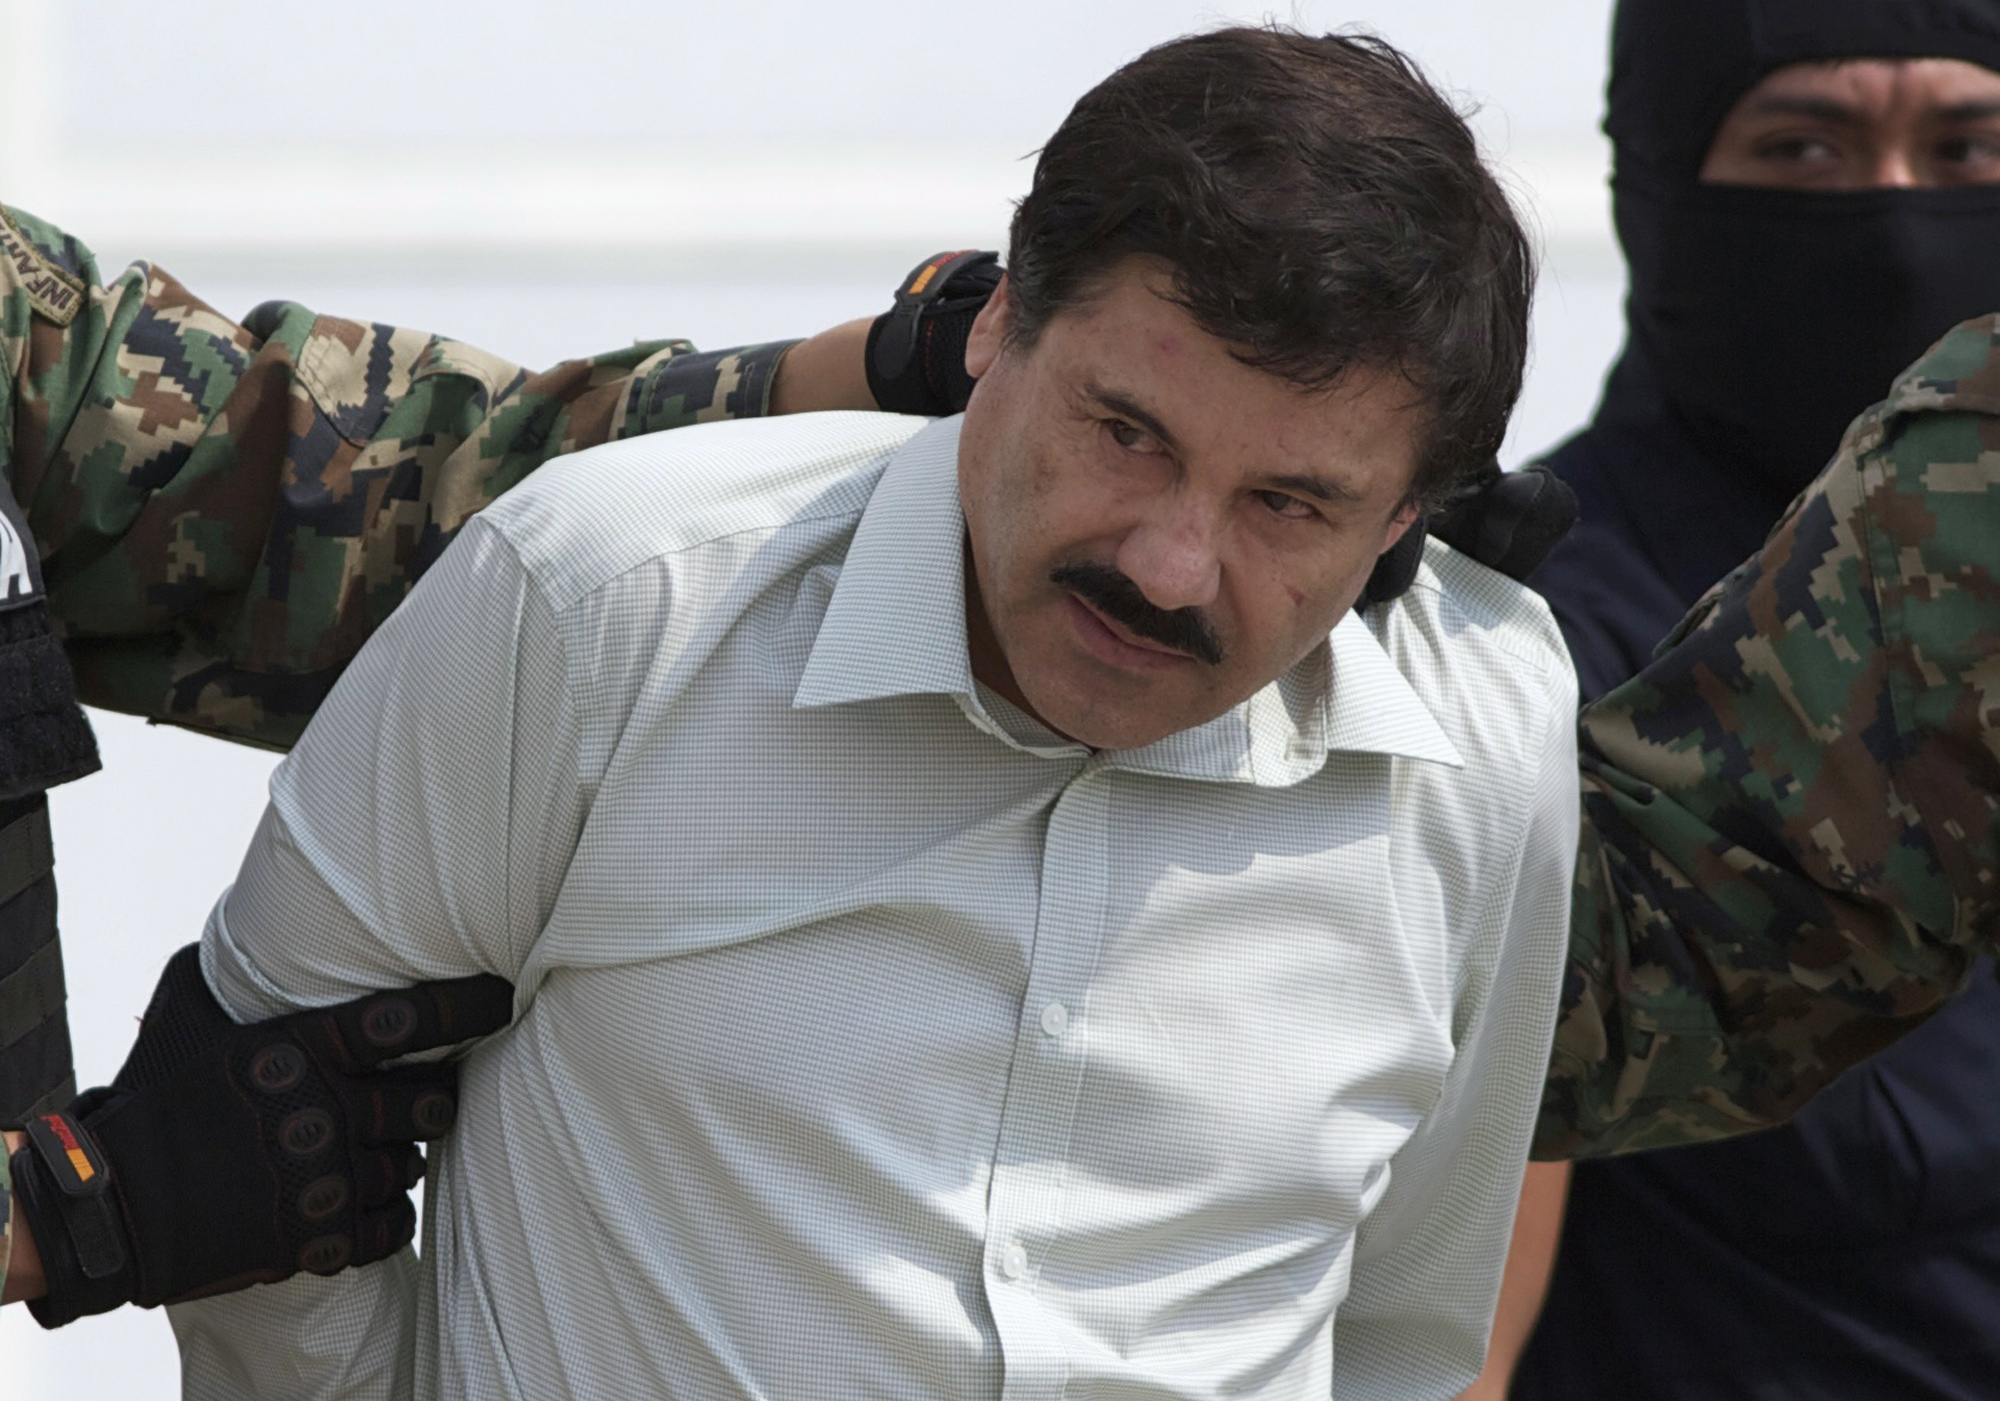 "FILE - This Feb. 22, 2014 file photo shows Joaquin ""El Chapo"" Guzman, the head of Mexico's Sinaloa Cartel, being escorted to a helicopter in Mexico City following his capture overnight in the beach resort town of Mazatlan. Ten years after it began, Mexico's drug war has left some major drug cartels splintered and many of the old-line capos in jail, but it has done little to reduce the amount of crime or violence in Mexico's roughest regions. (AP Photo/Eduardo Verdugo, File)"